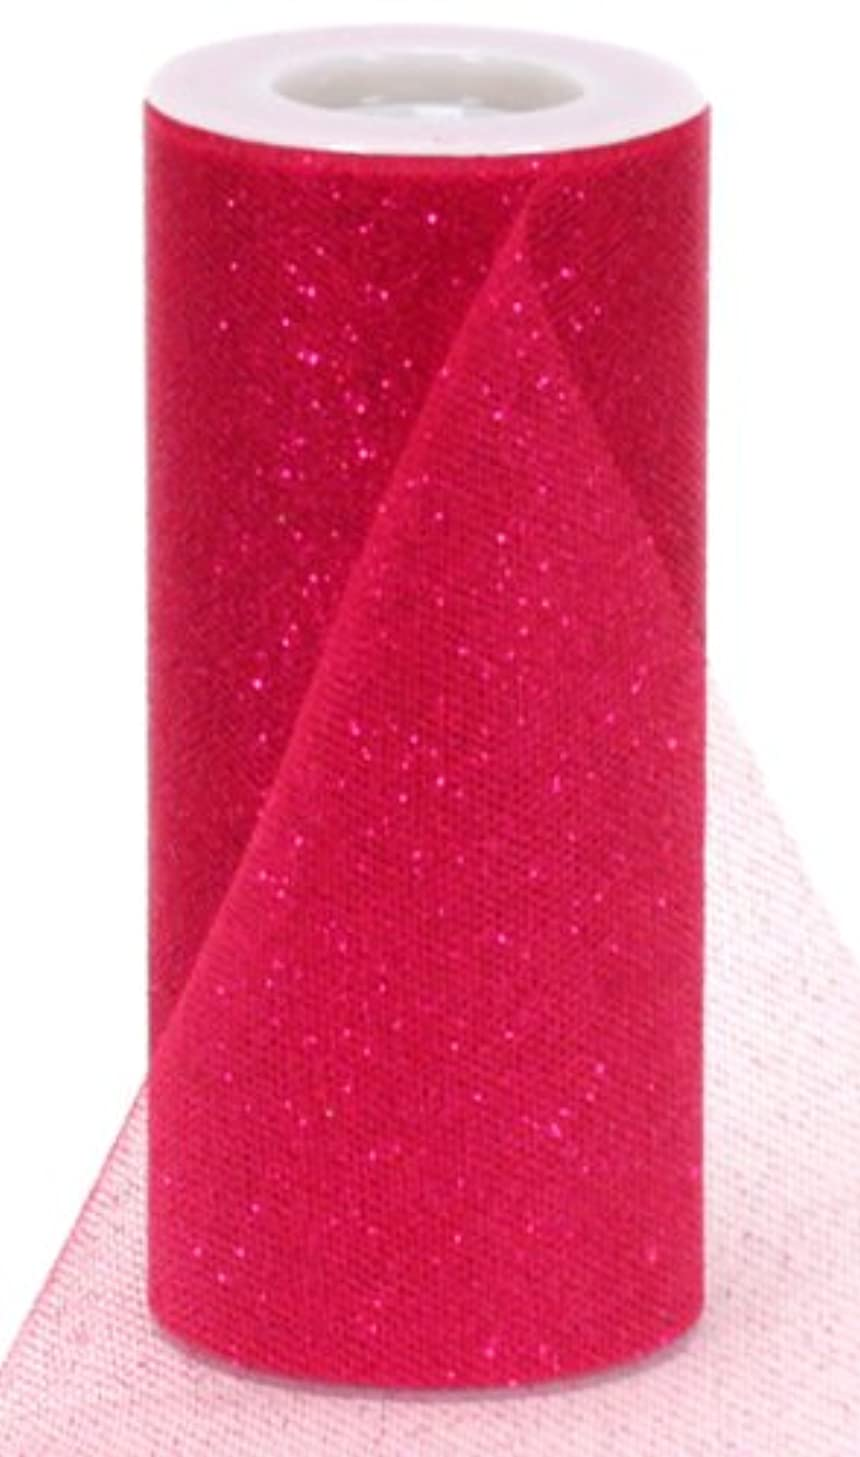 Berwick Offray Hot Pink Sparkle Tulle by the Bolt, 6'' W, 25 Yards